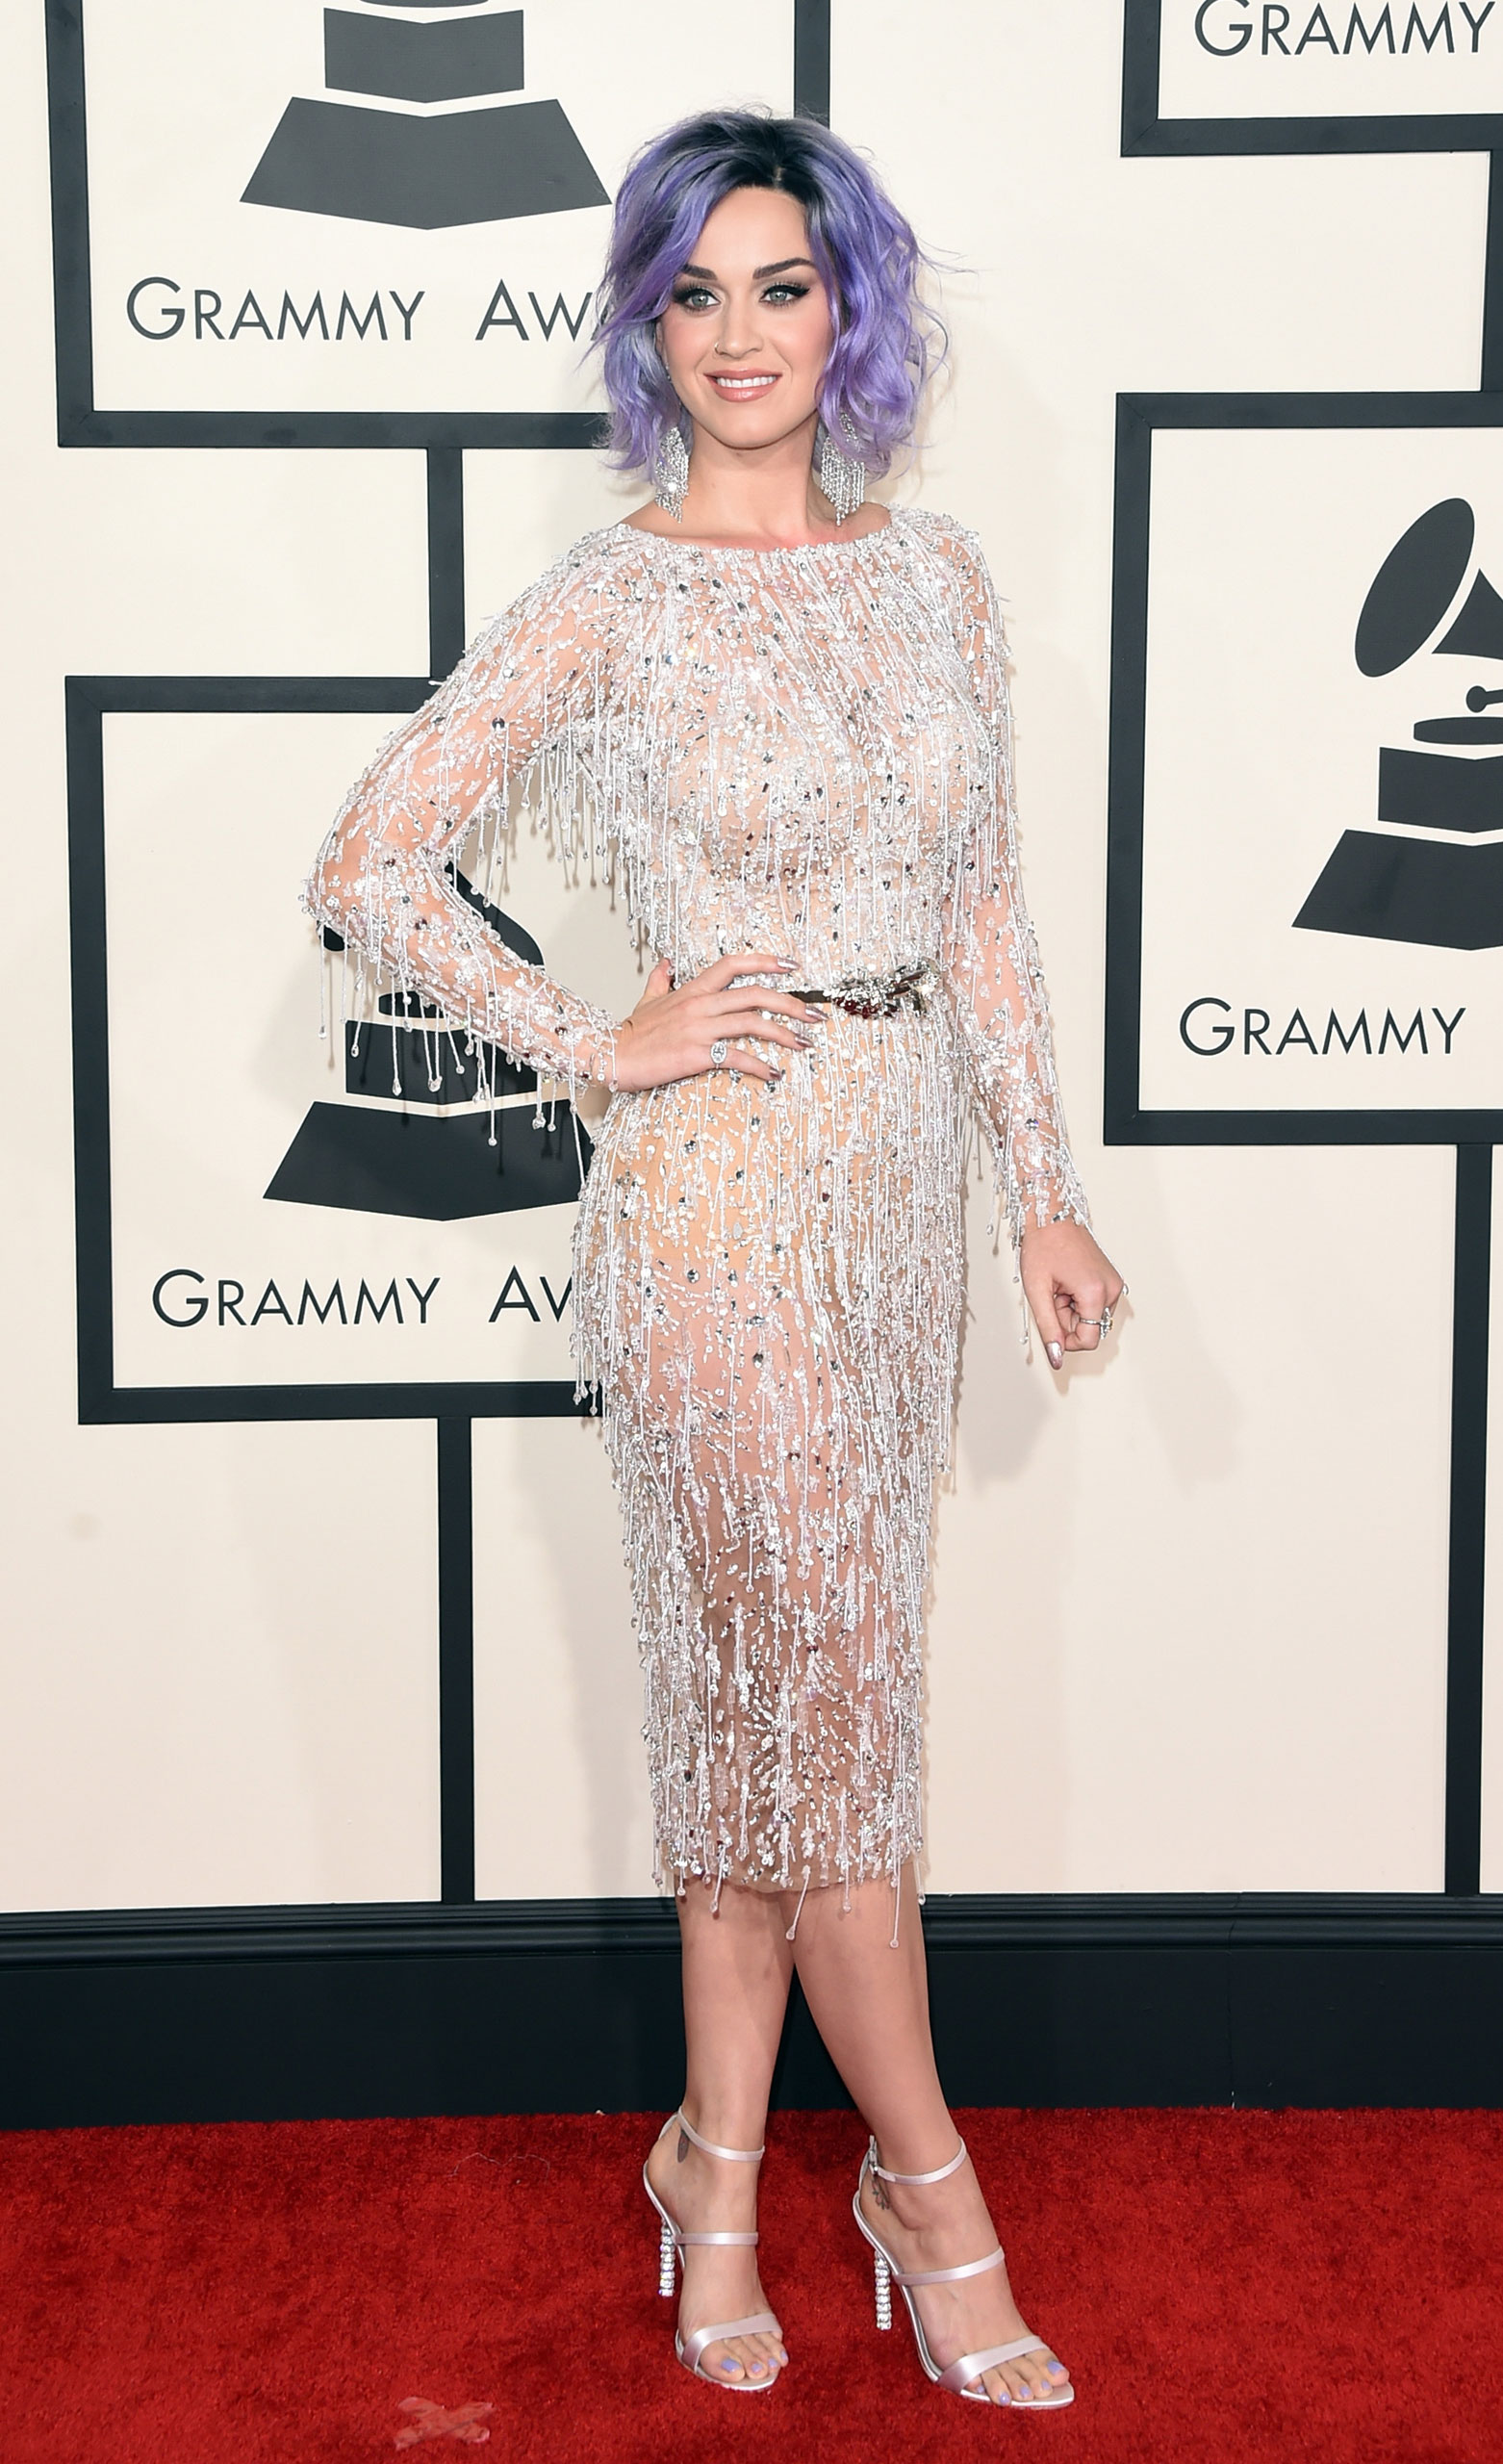 Katy Perry attends the 57th Annual Grammy Awards at the Staples Center on Feb. 8, 2015 in Los Angeles, Calif.